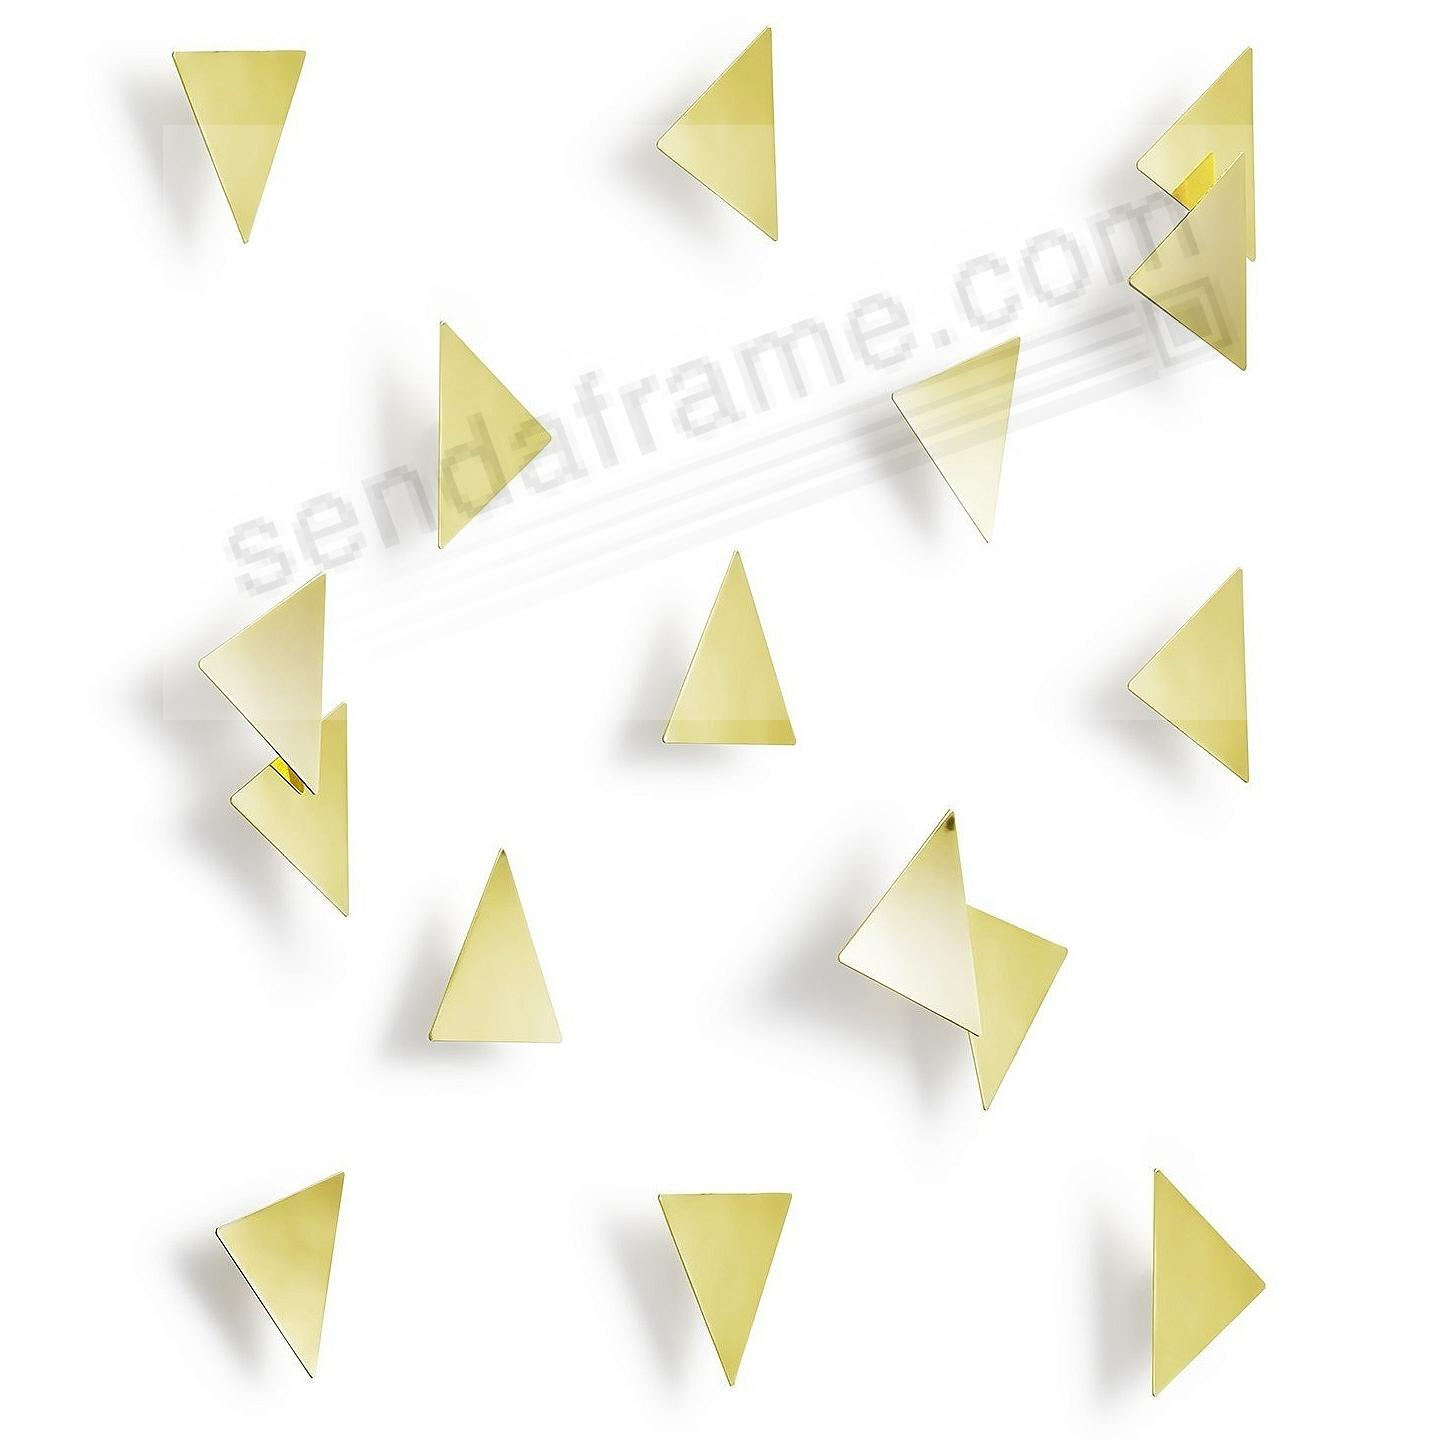 The Original CONFETTI TRIANGLES Stick-On Wall Decor by Umbra® Set of 16